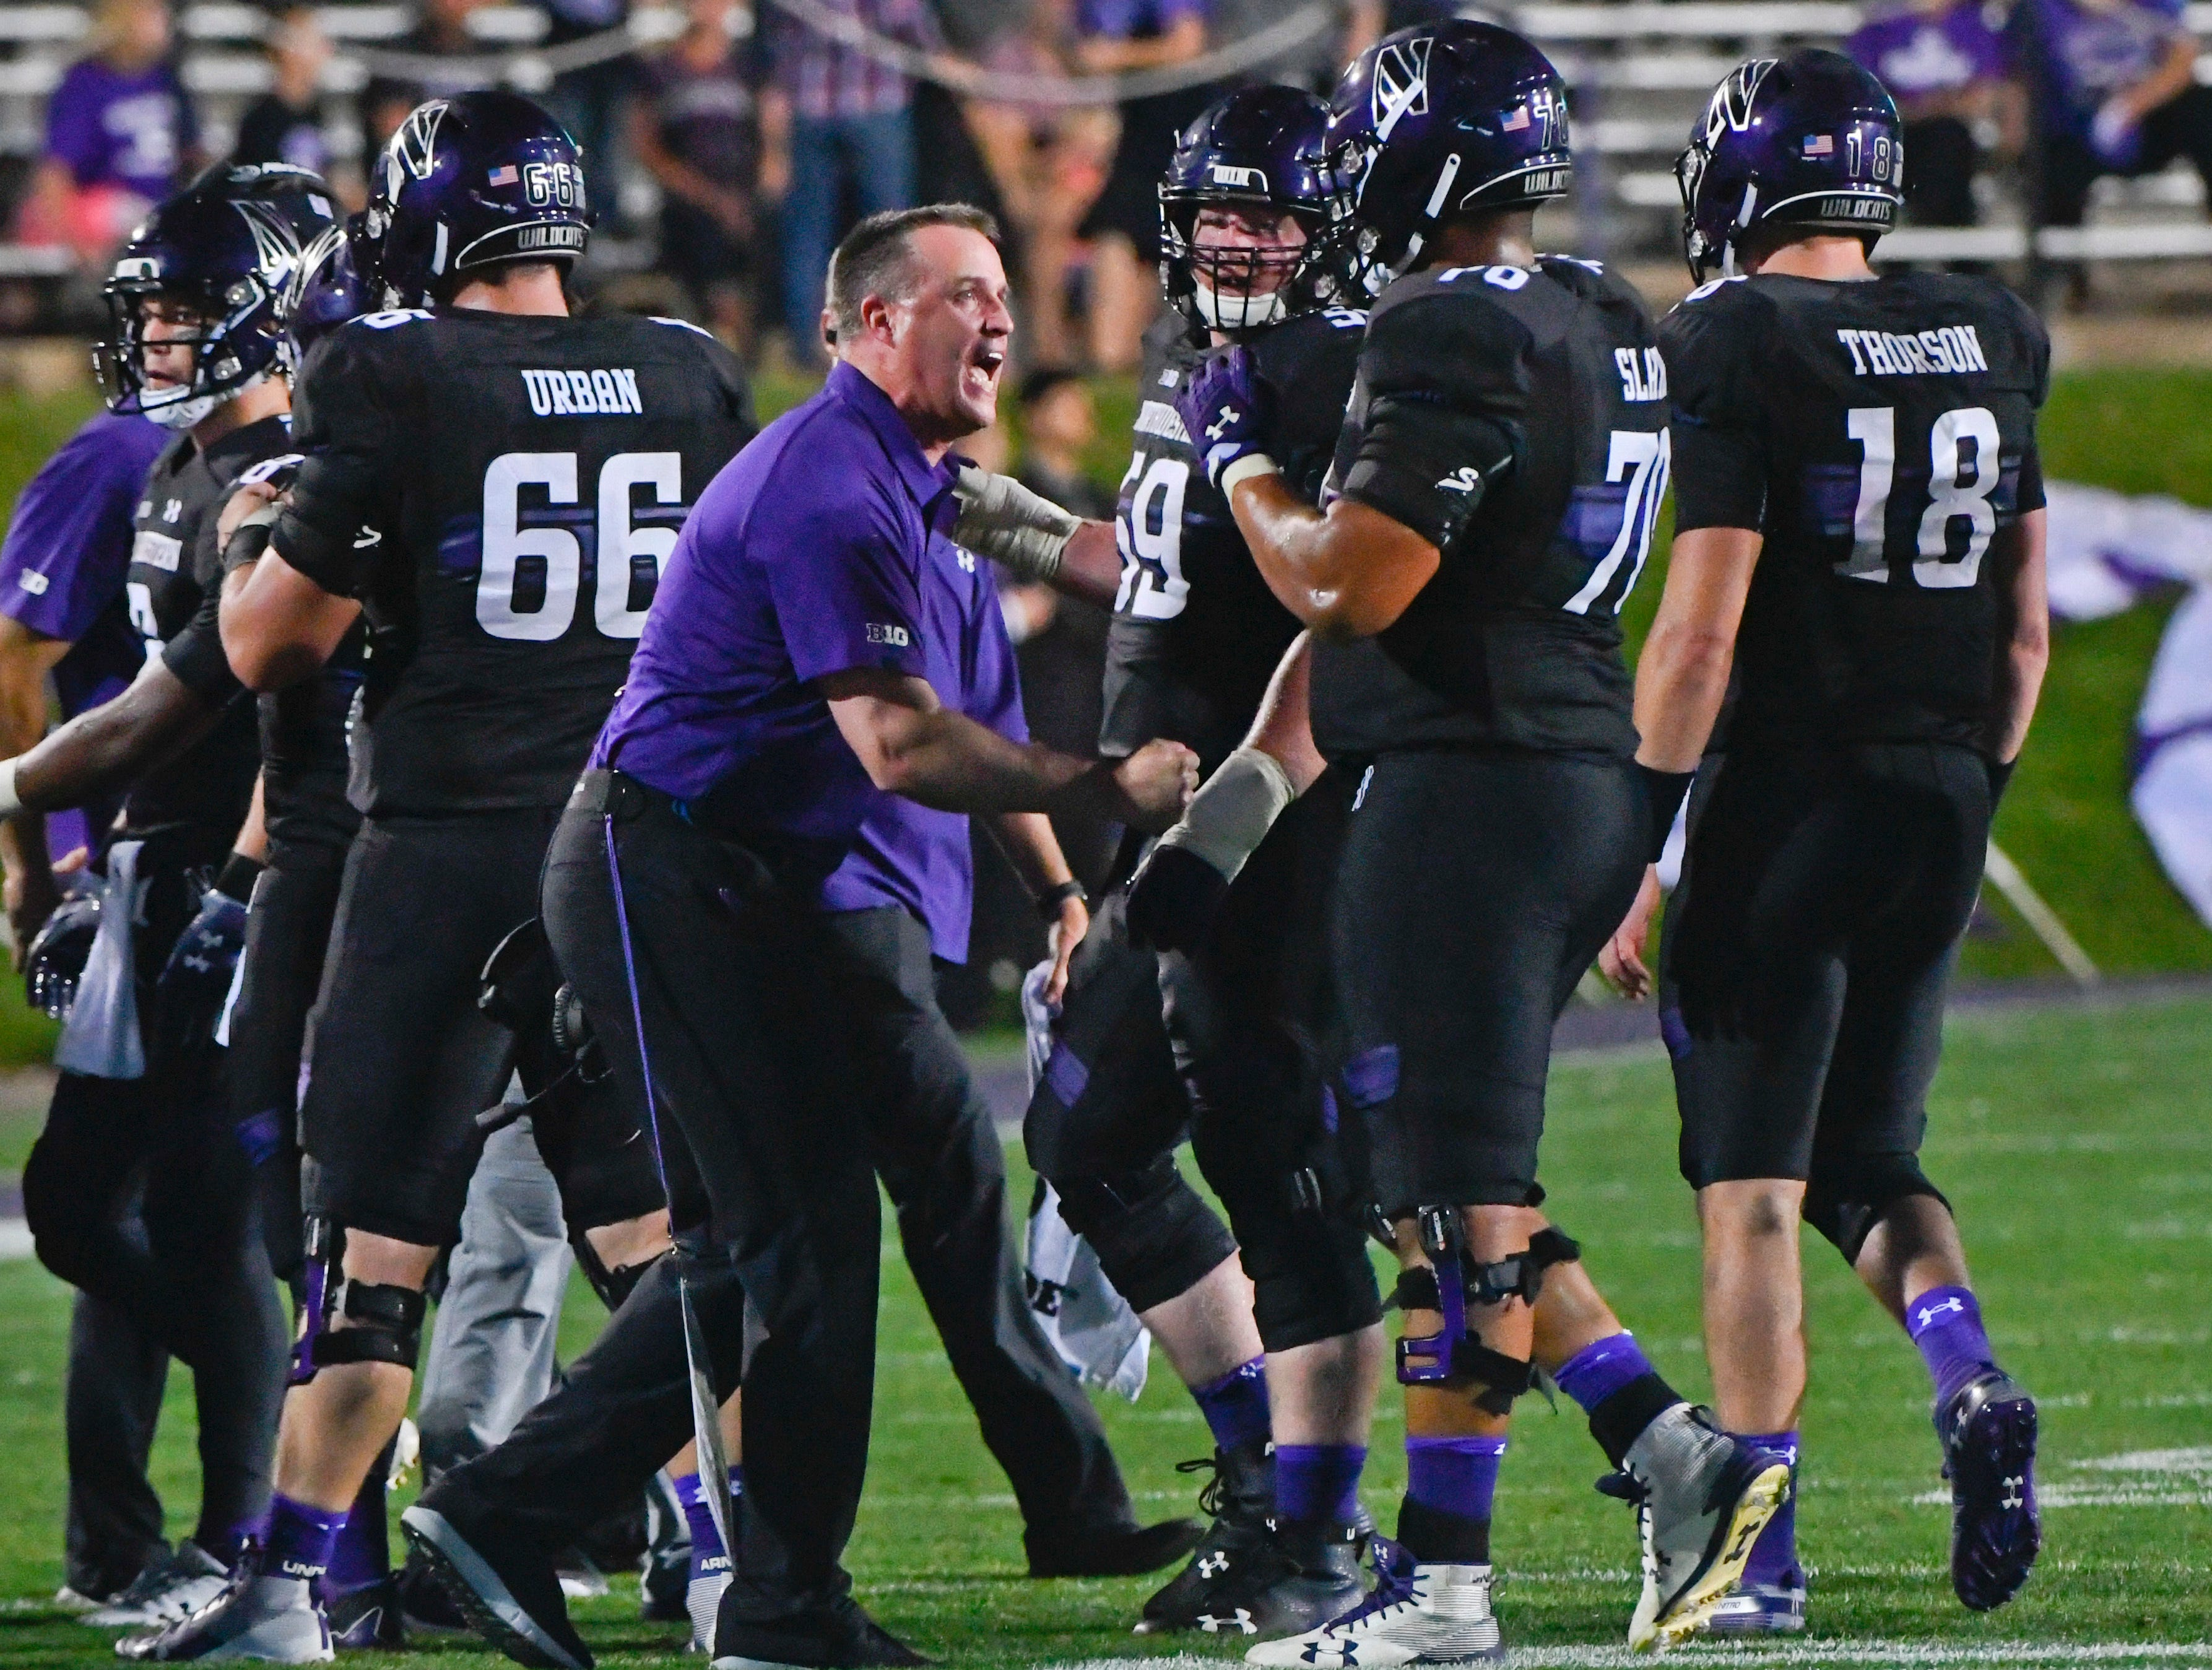 Northwestern head coach Pat Fitzgerald directs his team against Akron during the first half of an NCAA college football game in Evanston, Ill., Saturday, Sept. 15, 2018. (AP Photo/Matt Marton)